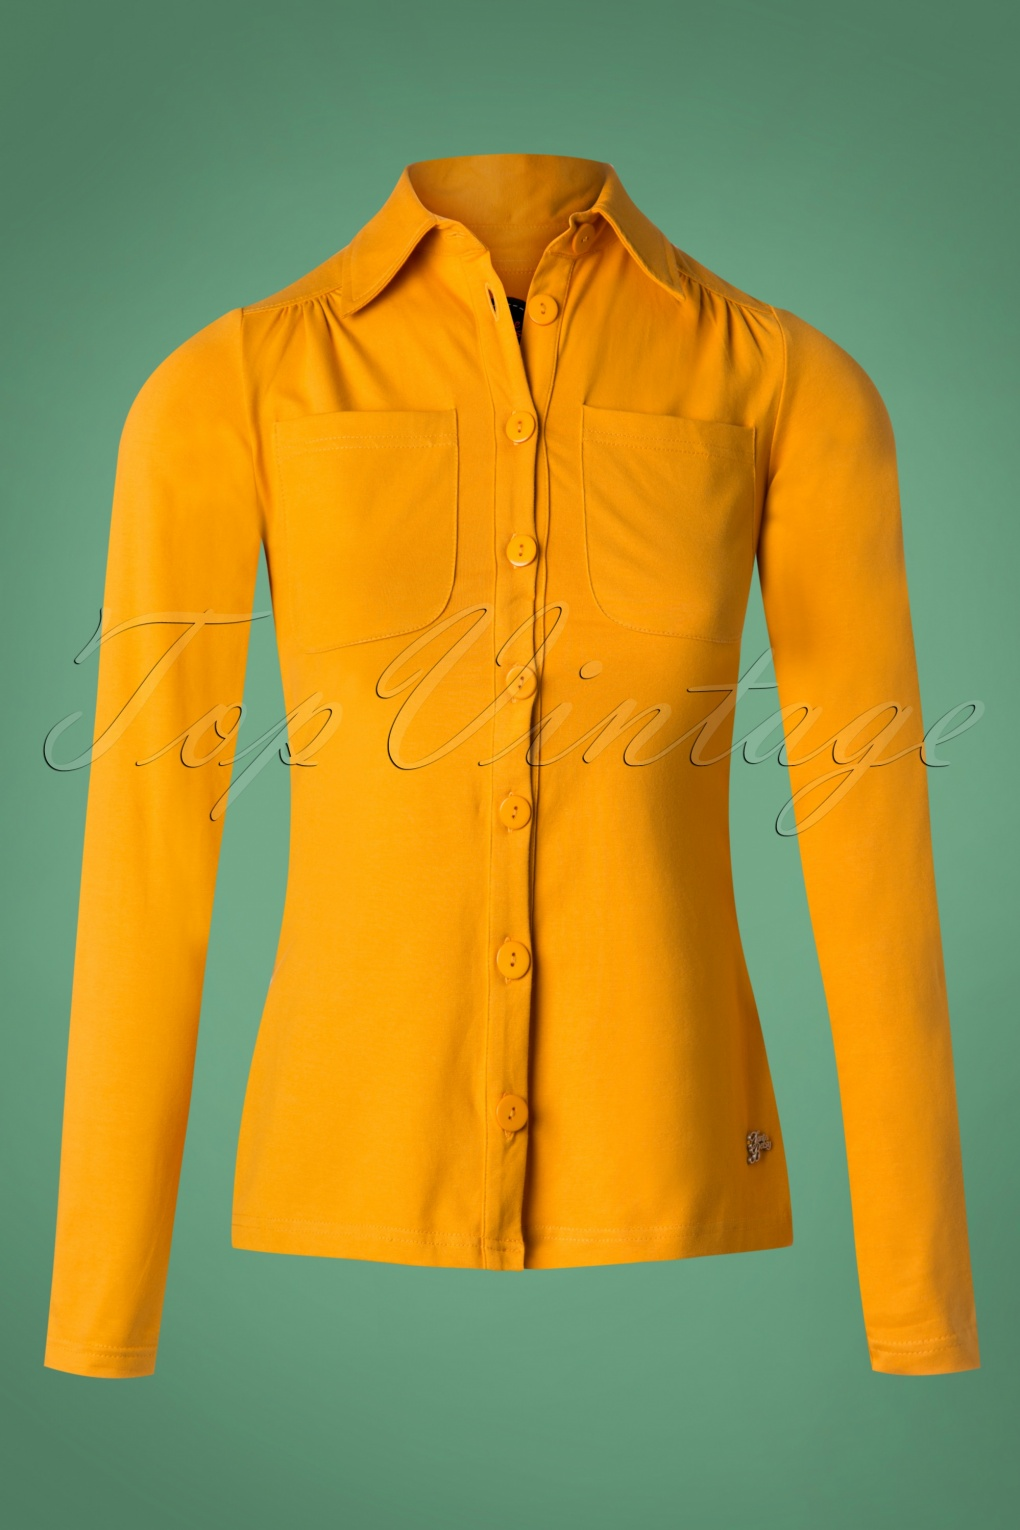 60s Mod Clothing Outfit Ideas 60s Betsy Blouse in Gold Yellow £46.43 AT vintagedancer.com